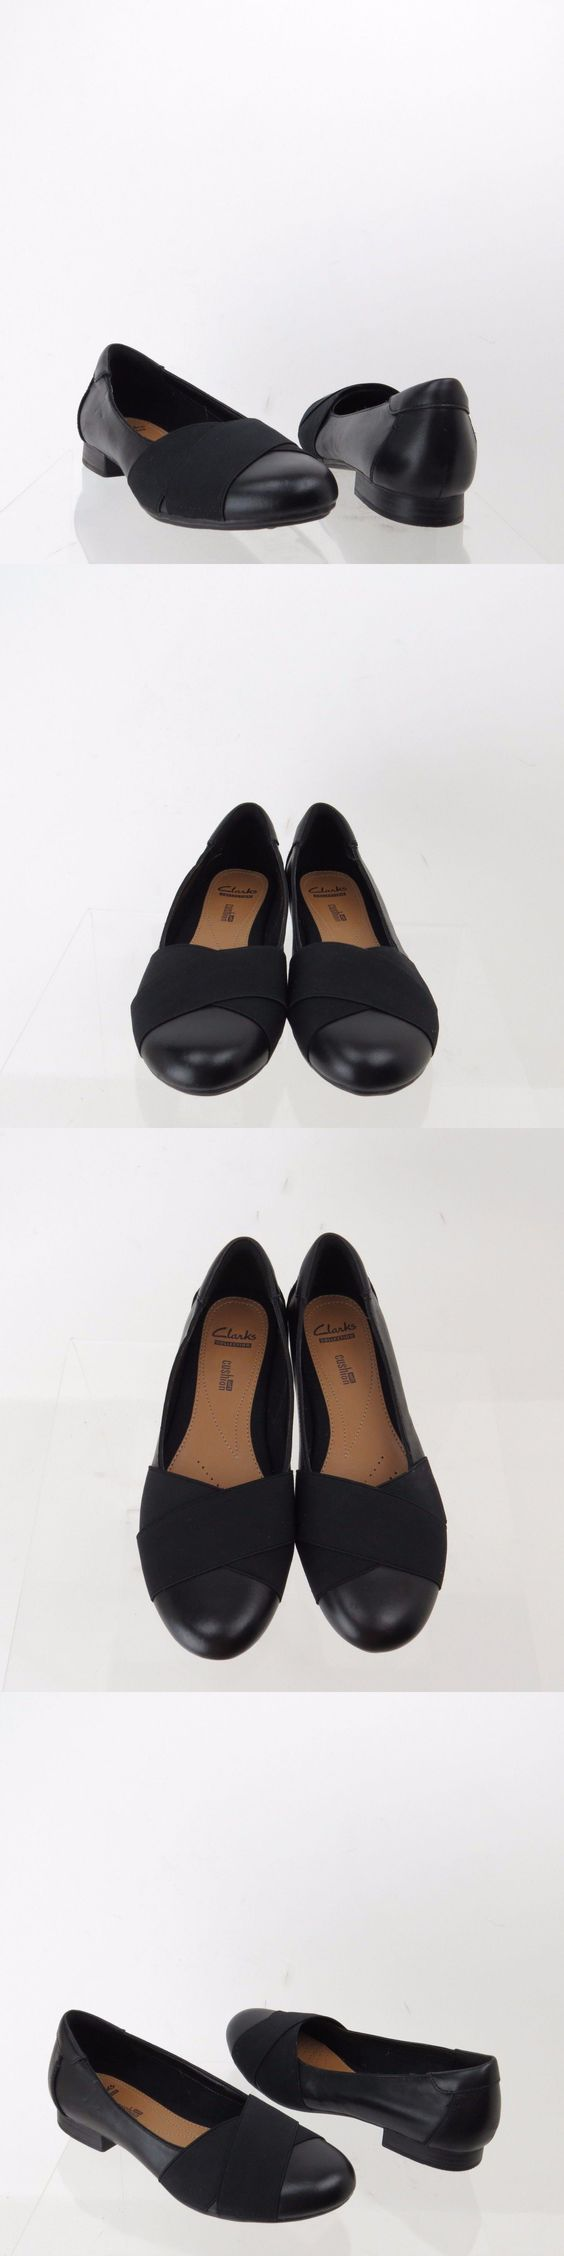 Women shoes: Women s Clarks Bayham Raine Shoes Black Slip On Loafer Flats Size 8 M NEW! BUY IT NOW ONLY: $31.49 #ustylefashionWomenshoes OR #ustylefashion